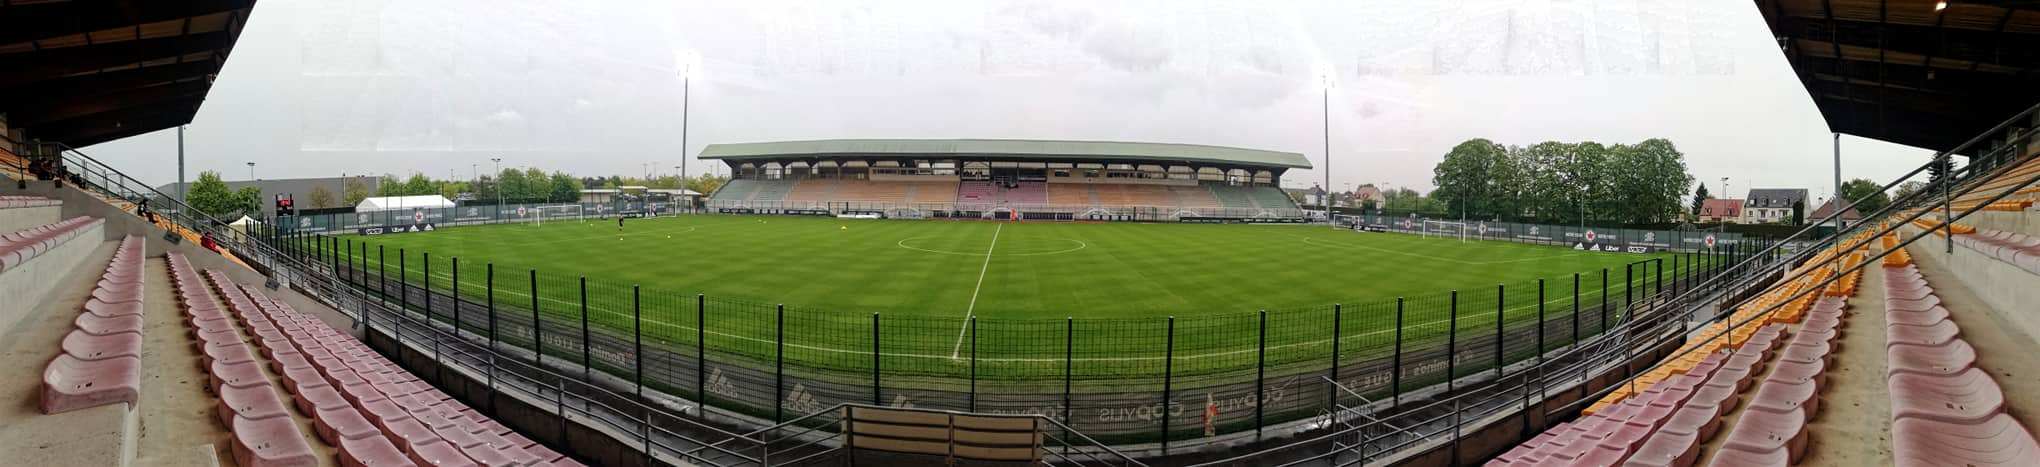 Stade Pierre Brisson, avant Red Star – Paris FC (c) Gérard Valck